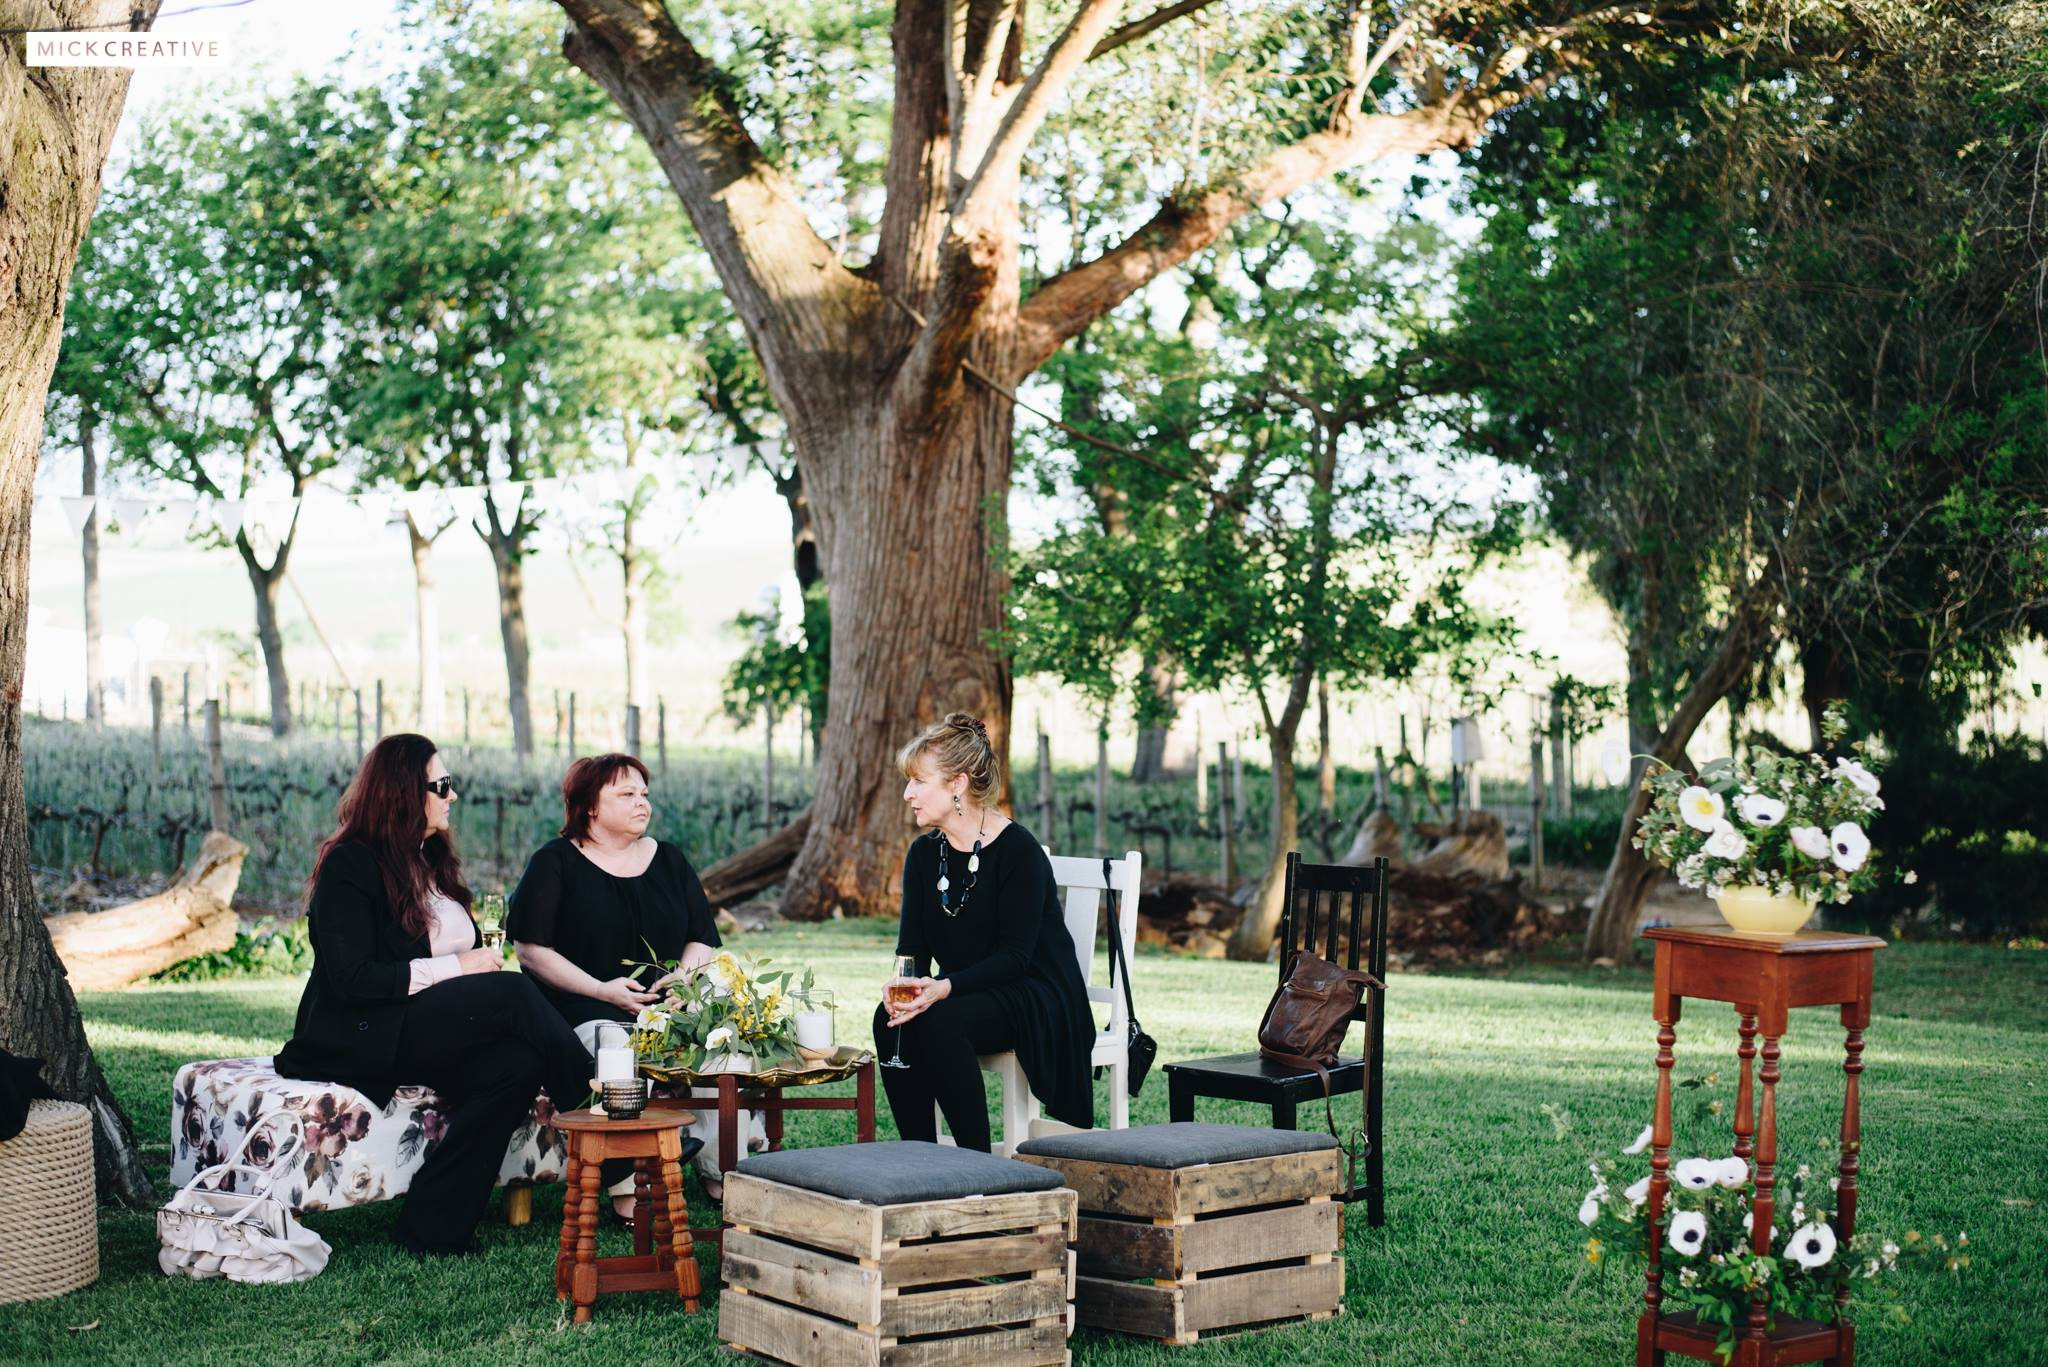 Al fresco birthday celebration with Mick Creative + Kadou Floral Design